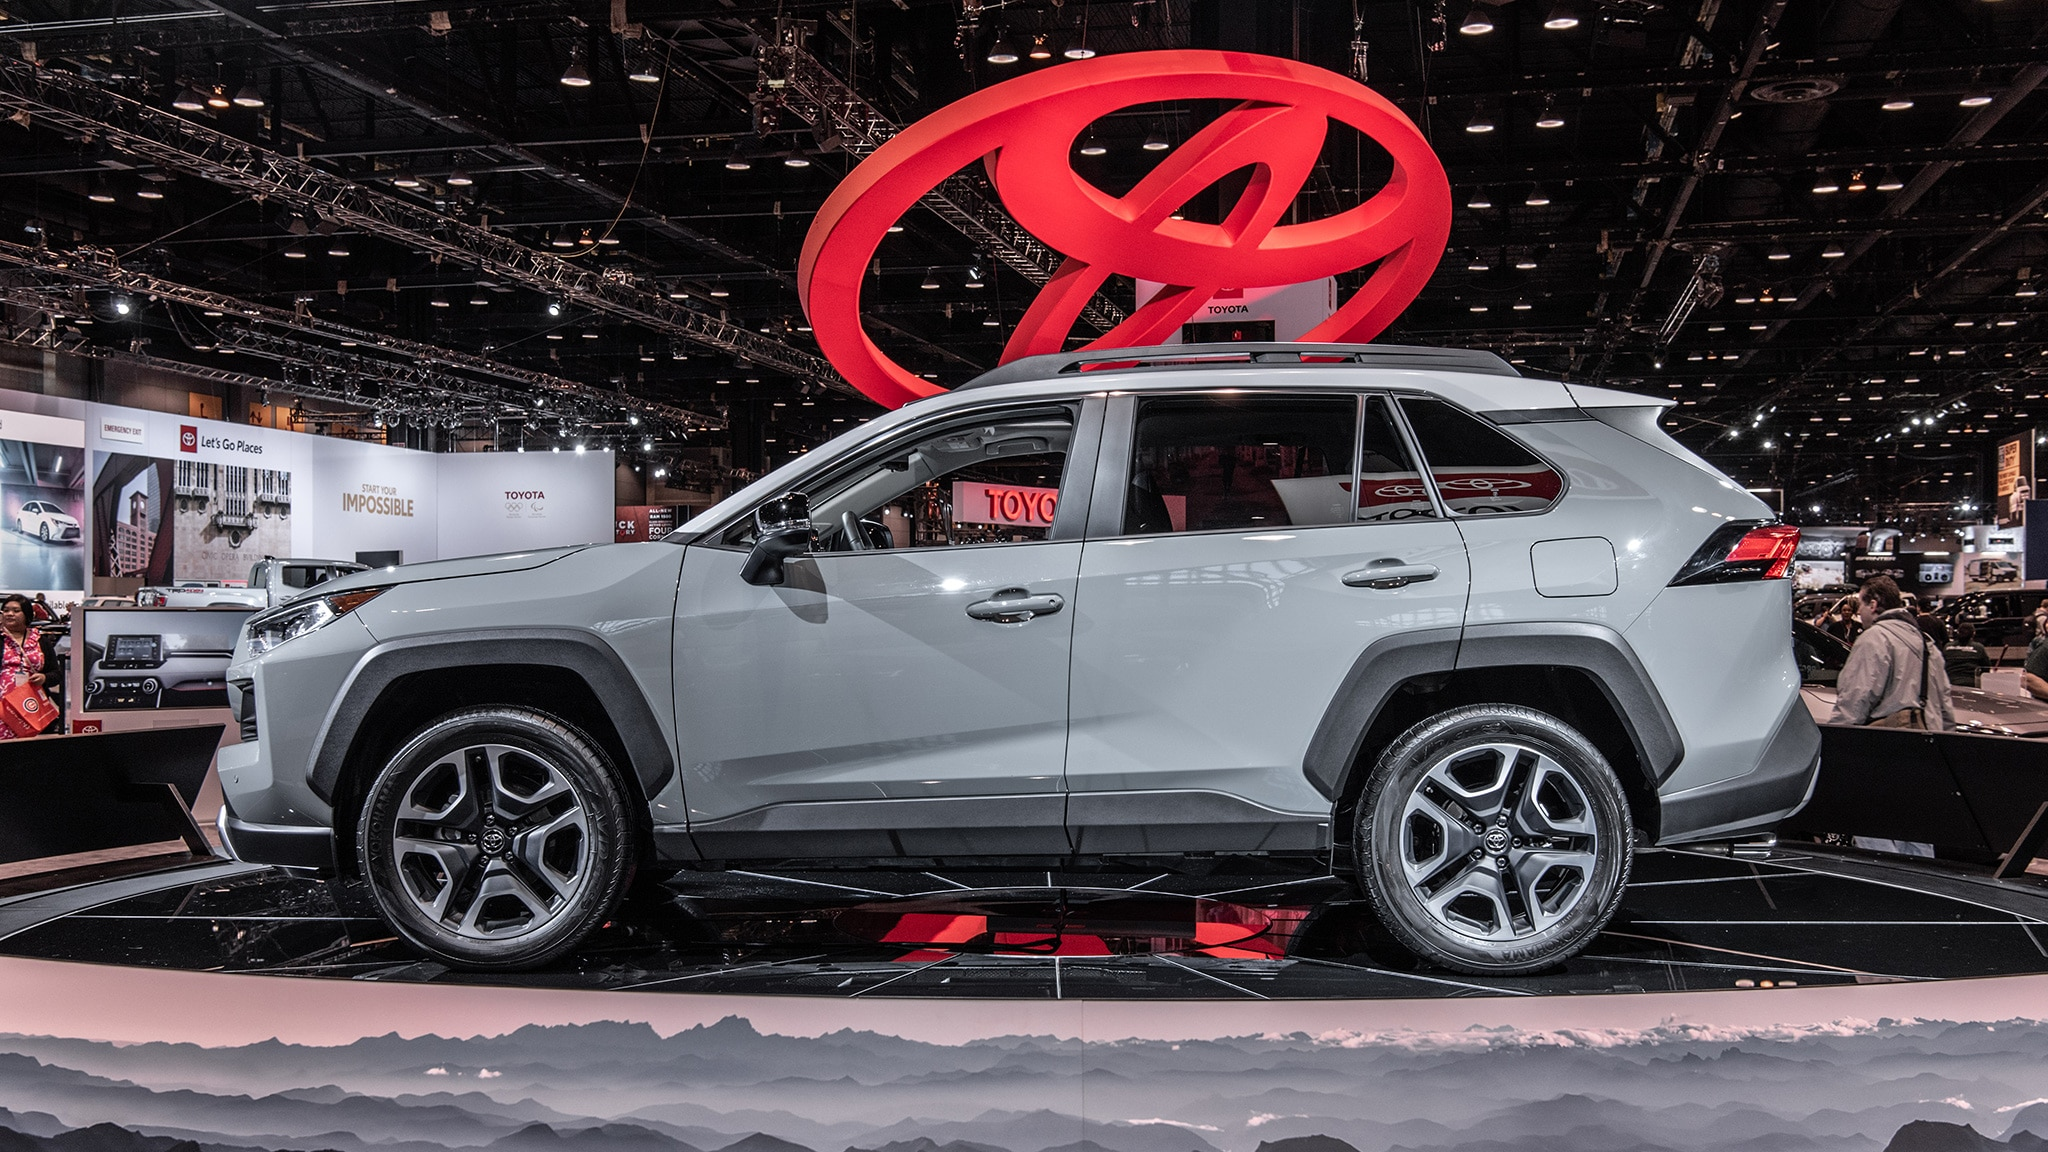 2020 Toyota RAV4 TRD At Chicago Auto Show 09